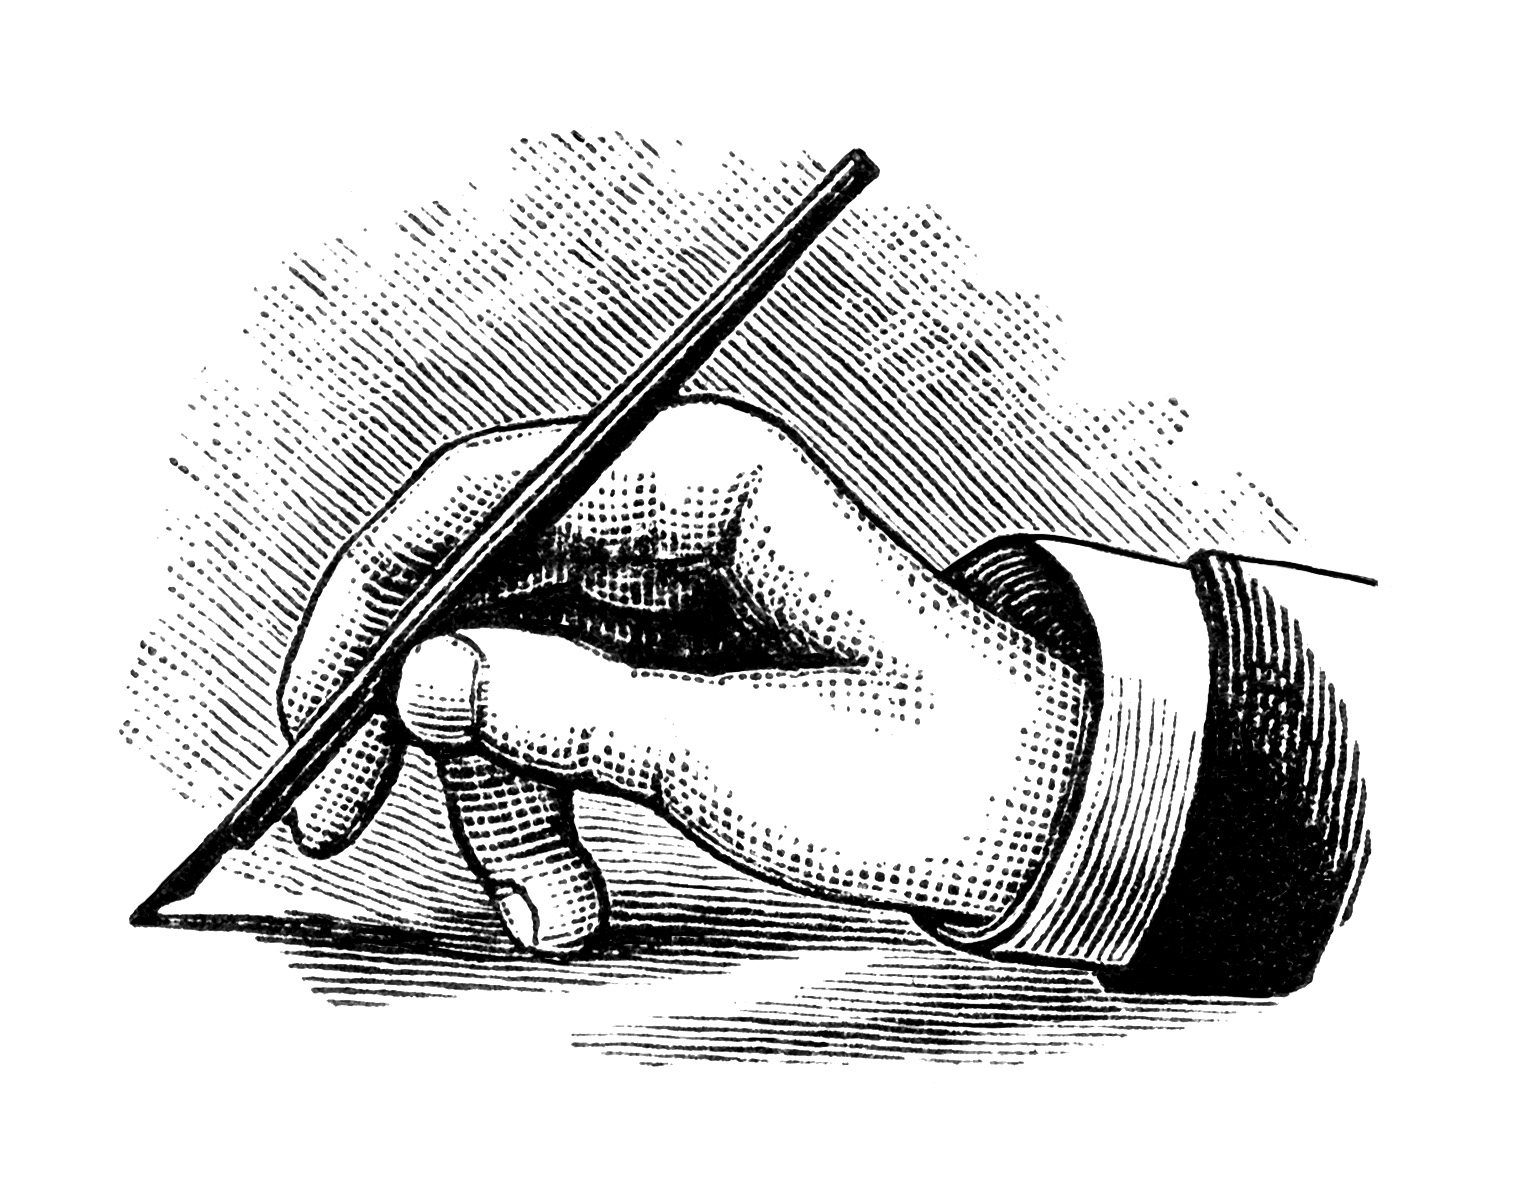 Hand holding and writing with pen clip art old design Calligraphy books free